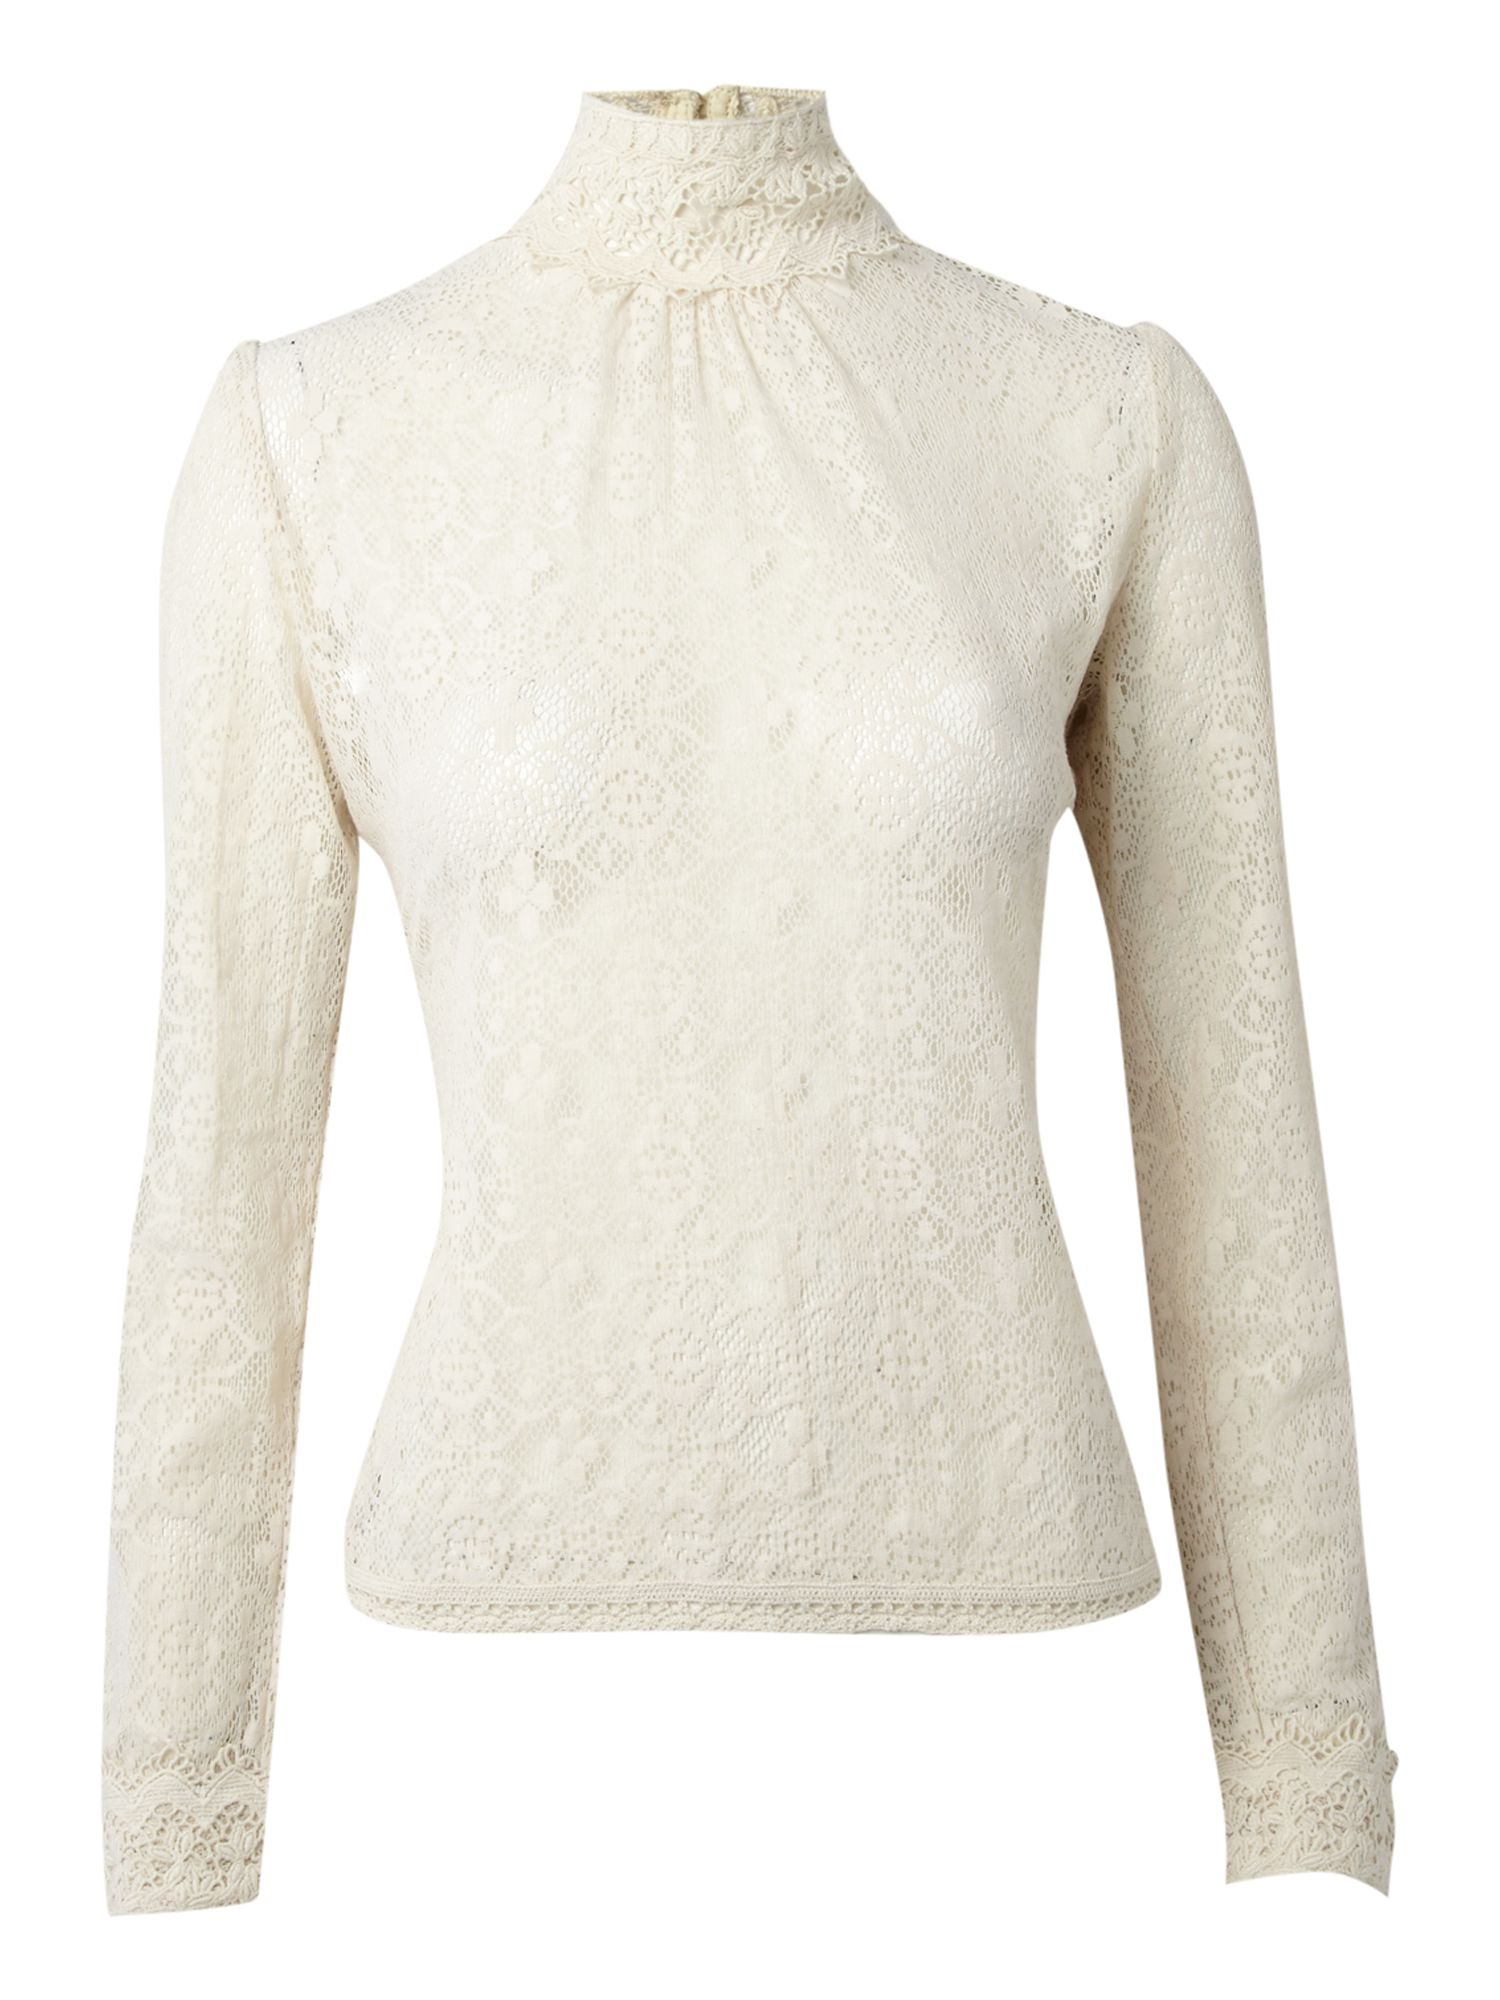 Therapy Womens Therapy High neck lace blouse, Cream product image